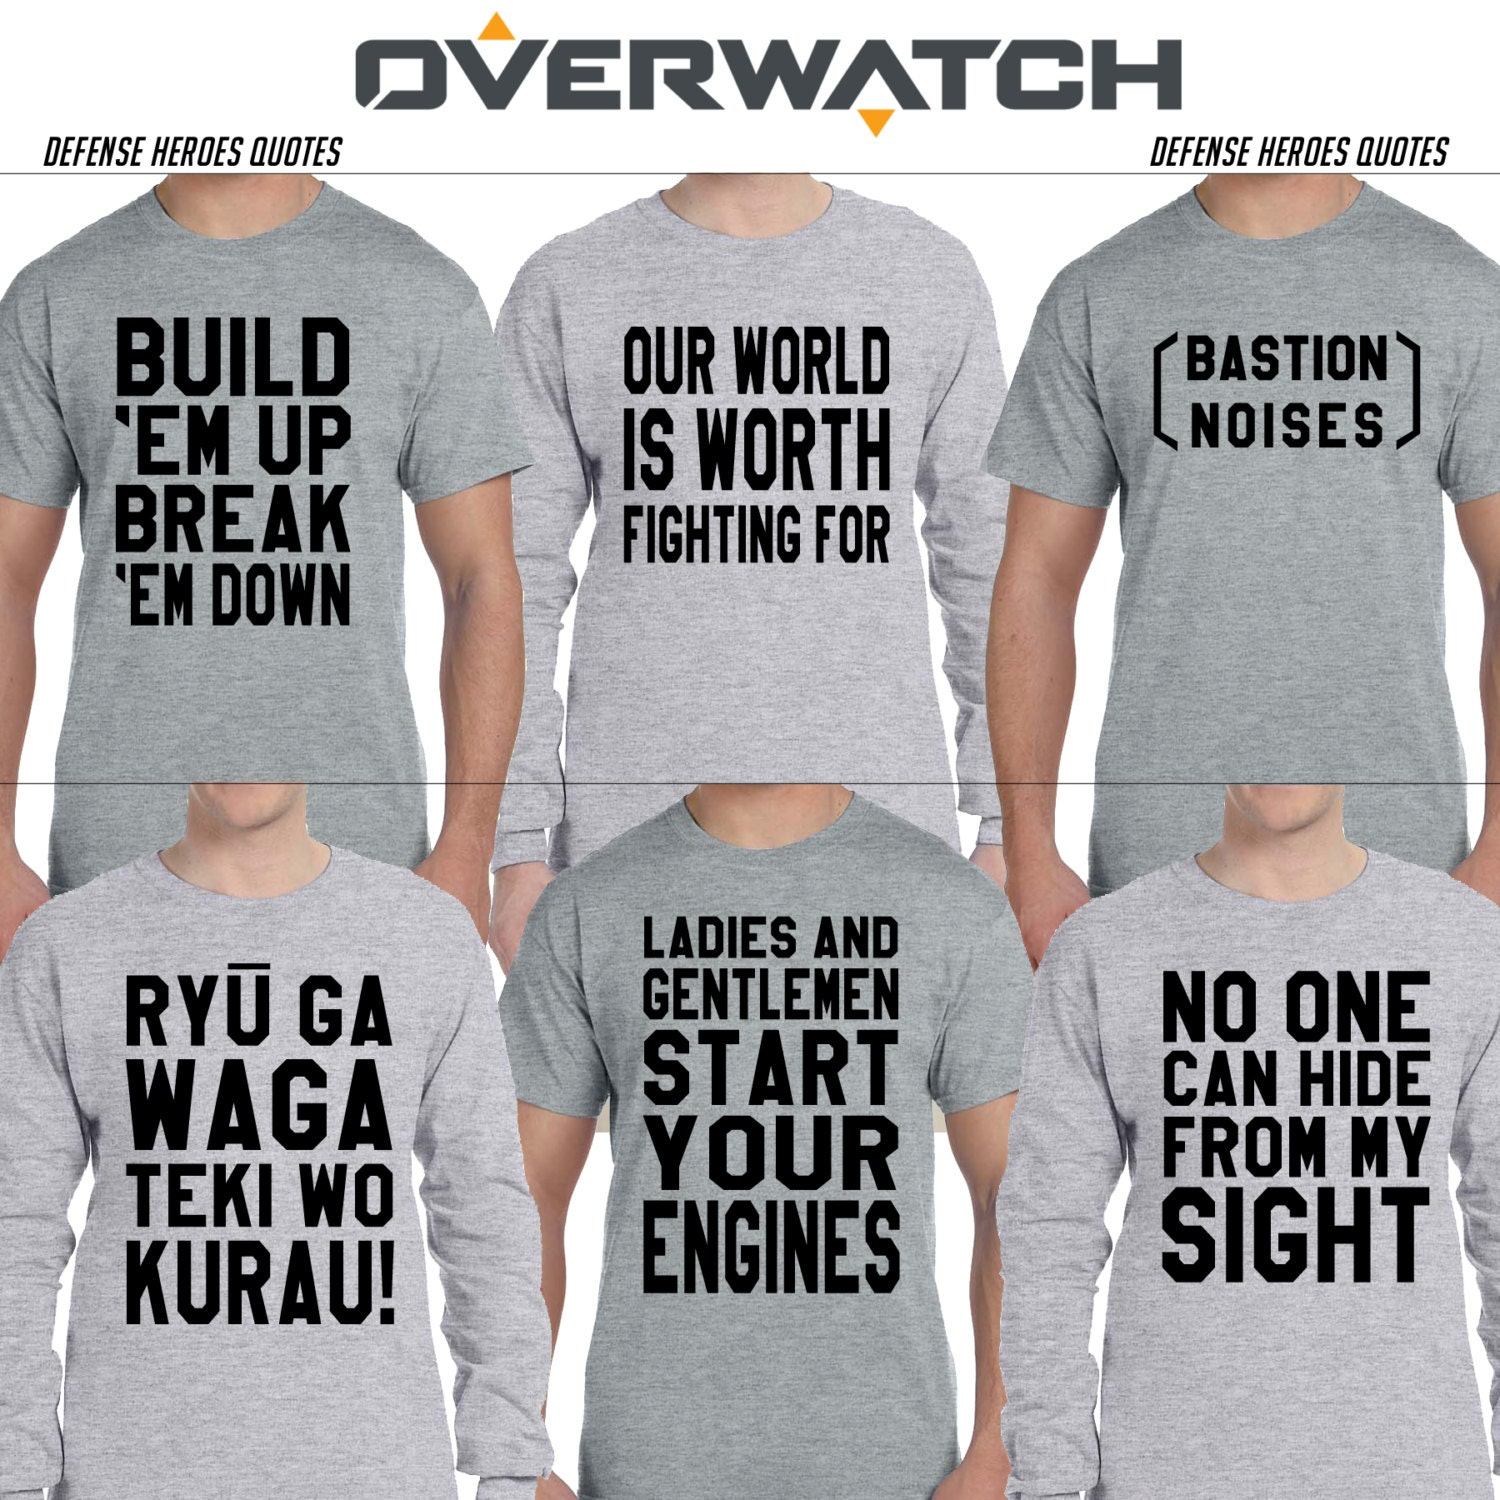 Design your own t shirt american apparel - Overwatch Defense Heroes Quotes Bastion Widowmaker Torbjorn Mei Hanzo Junkrat Shirt Long Sleeve American Apparel Gift For Gamer Pc Blizzard